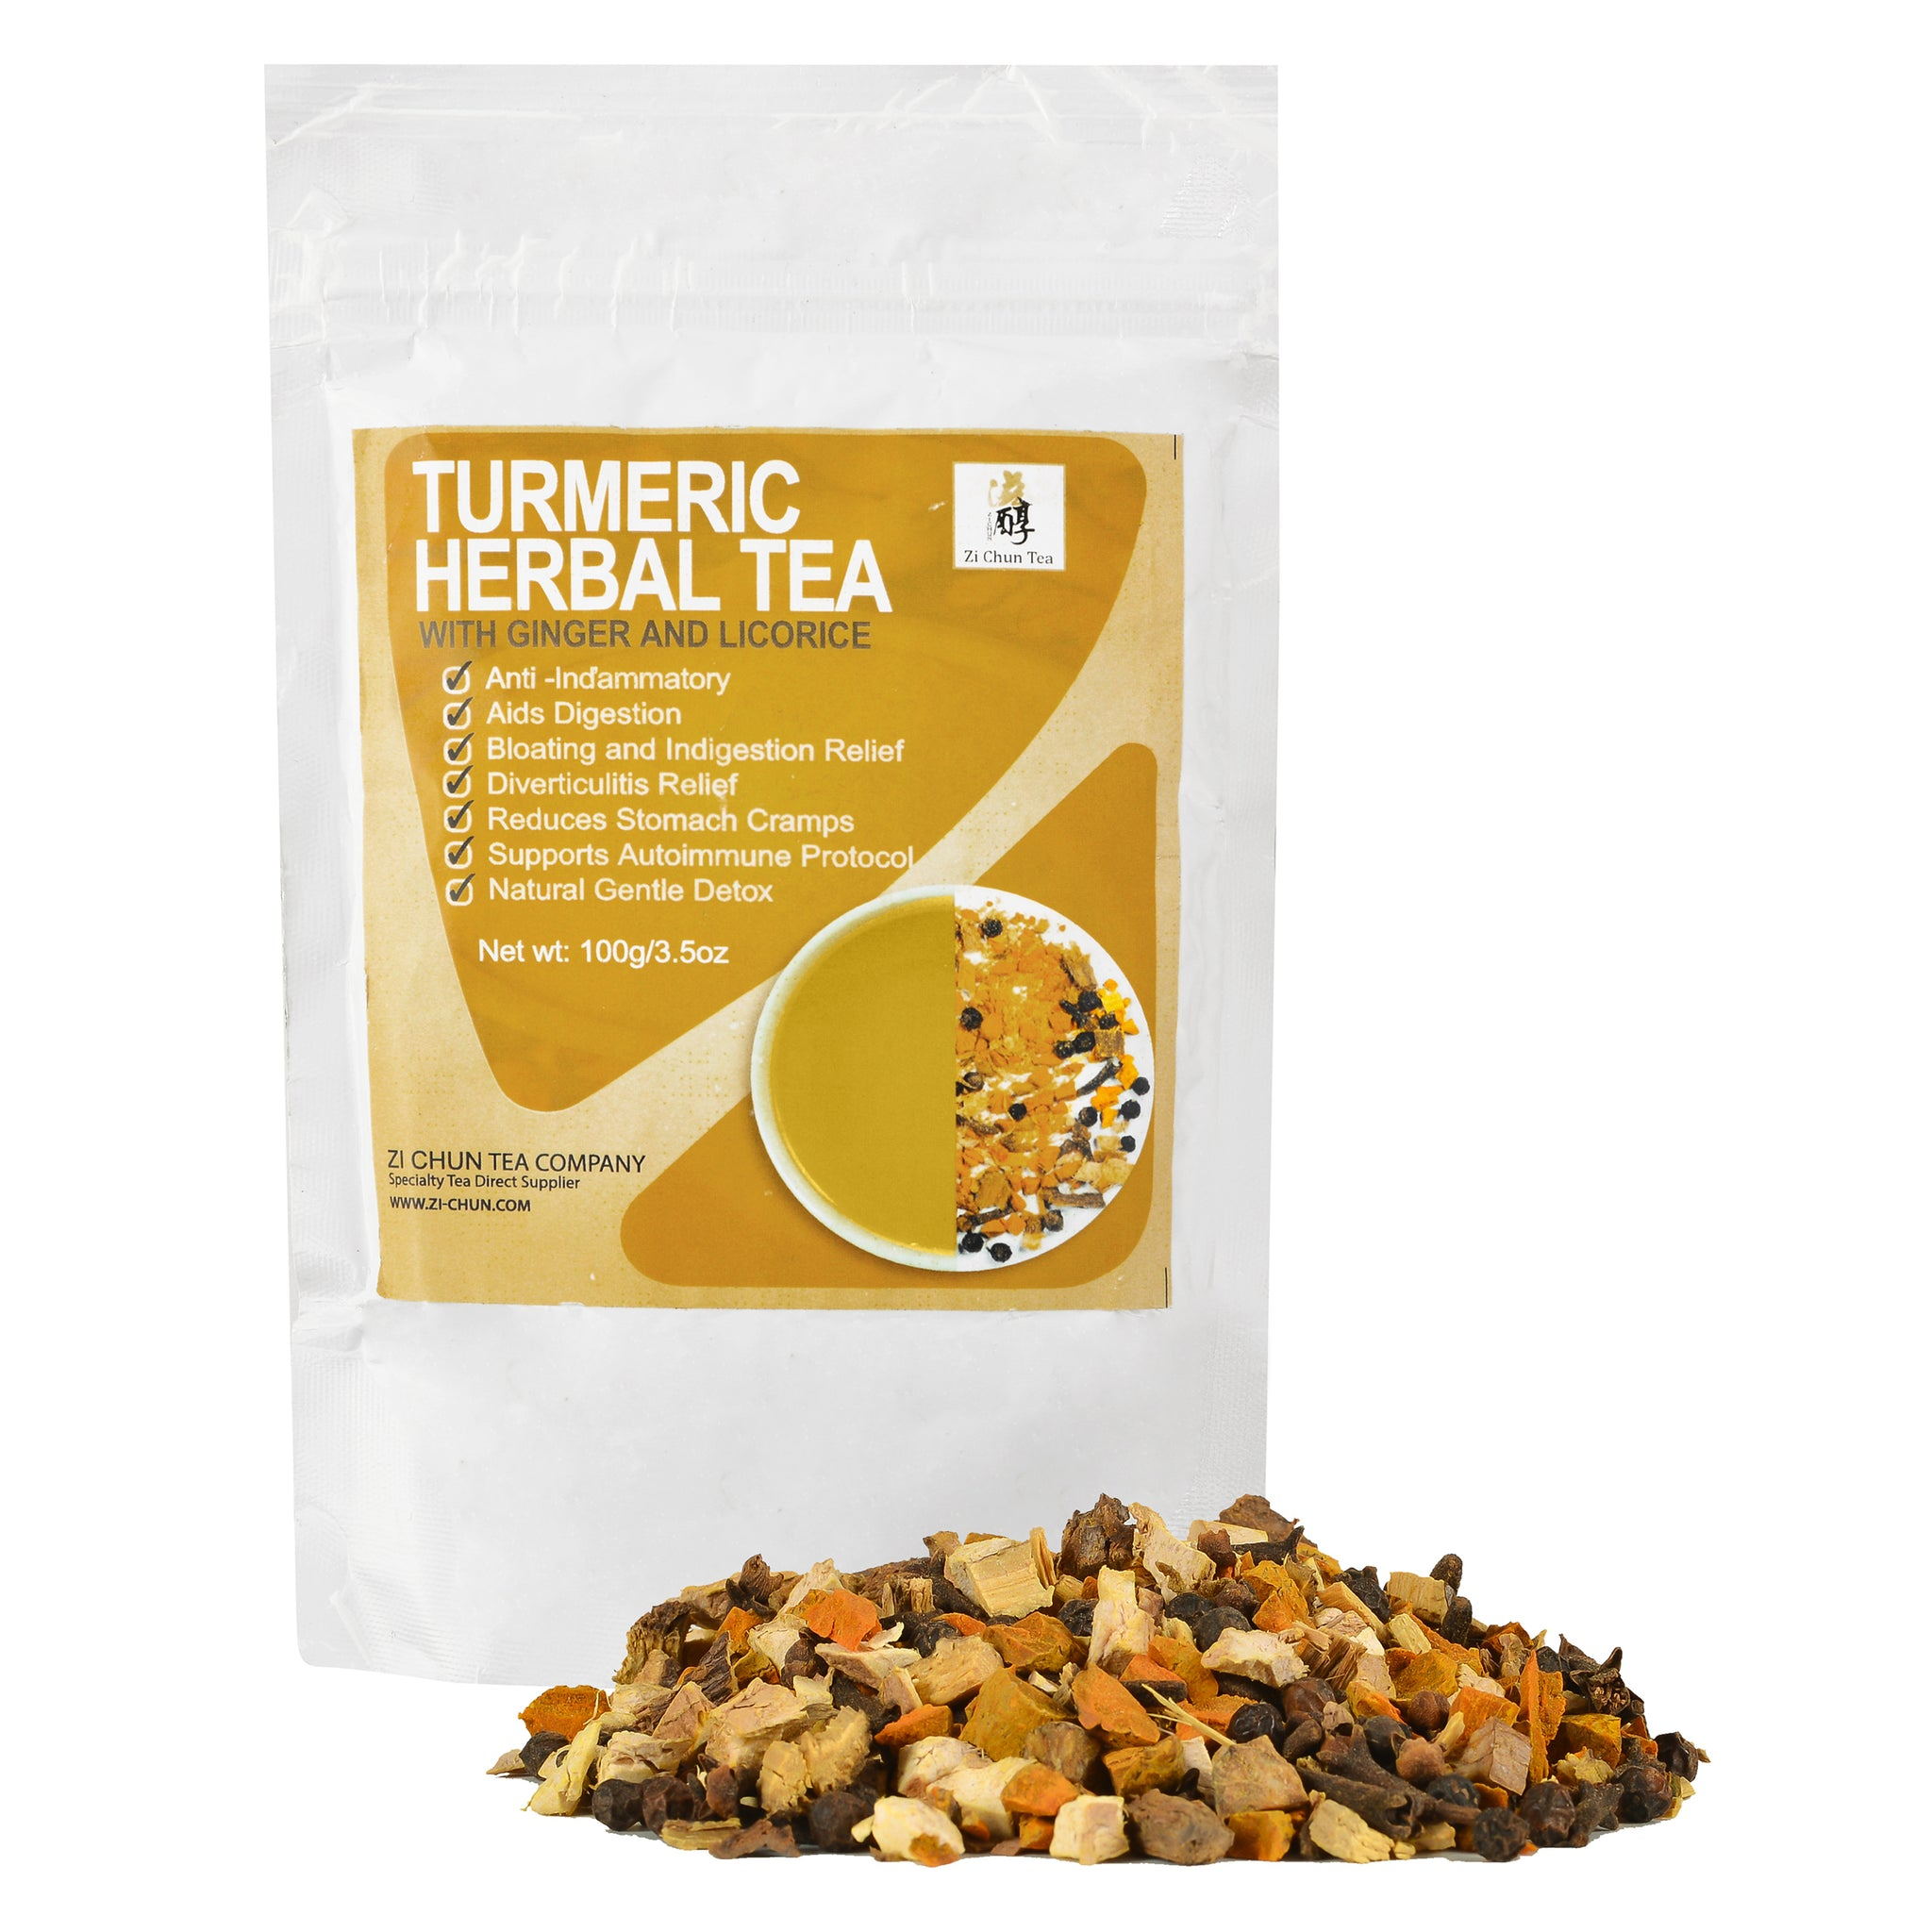 Turmeric Tea with Ginger - Stomach Support and Anti-Inflammatory Tea